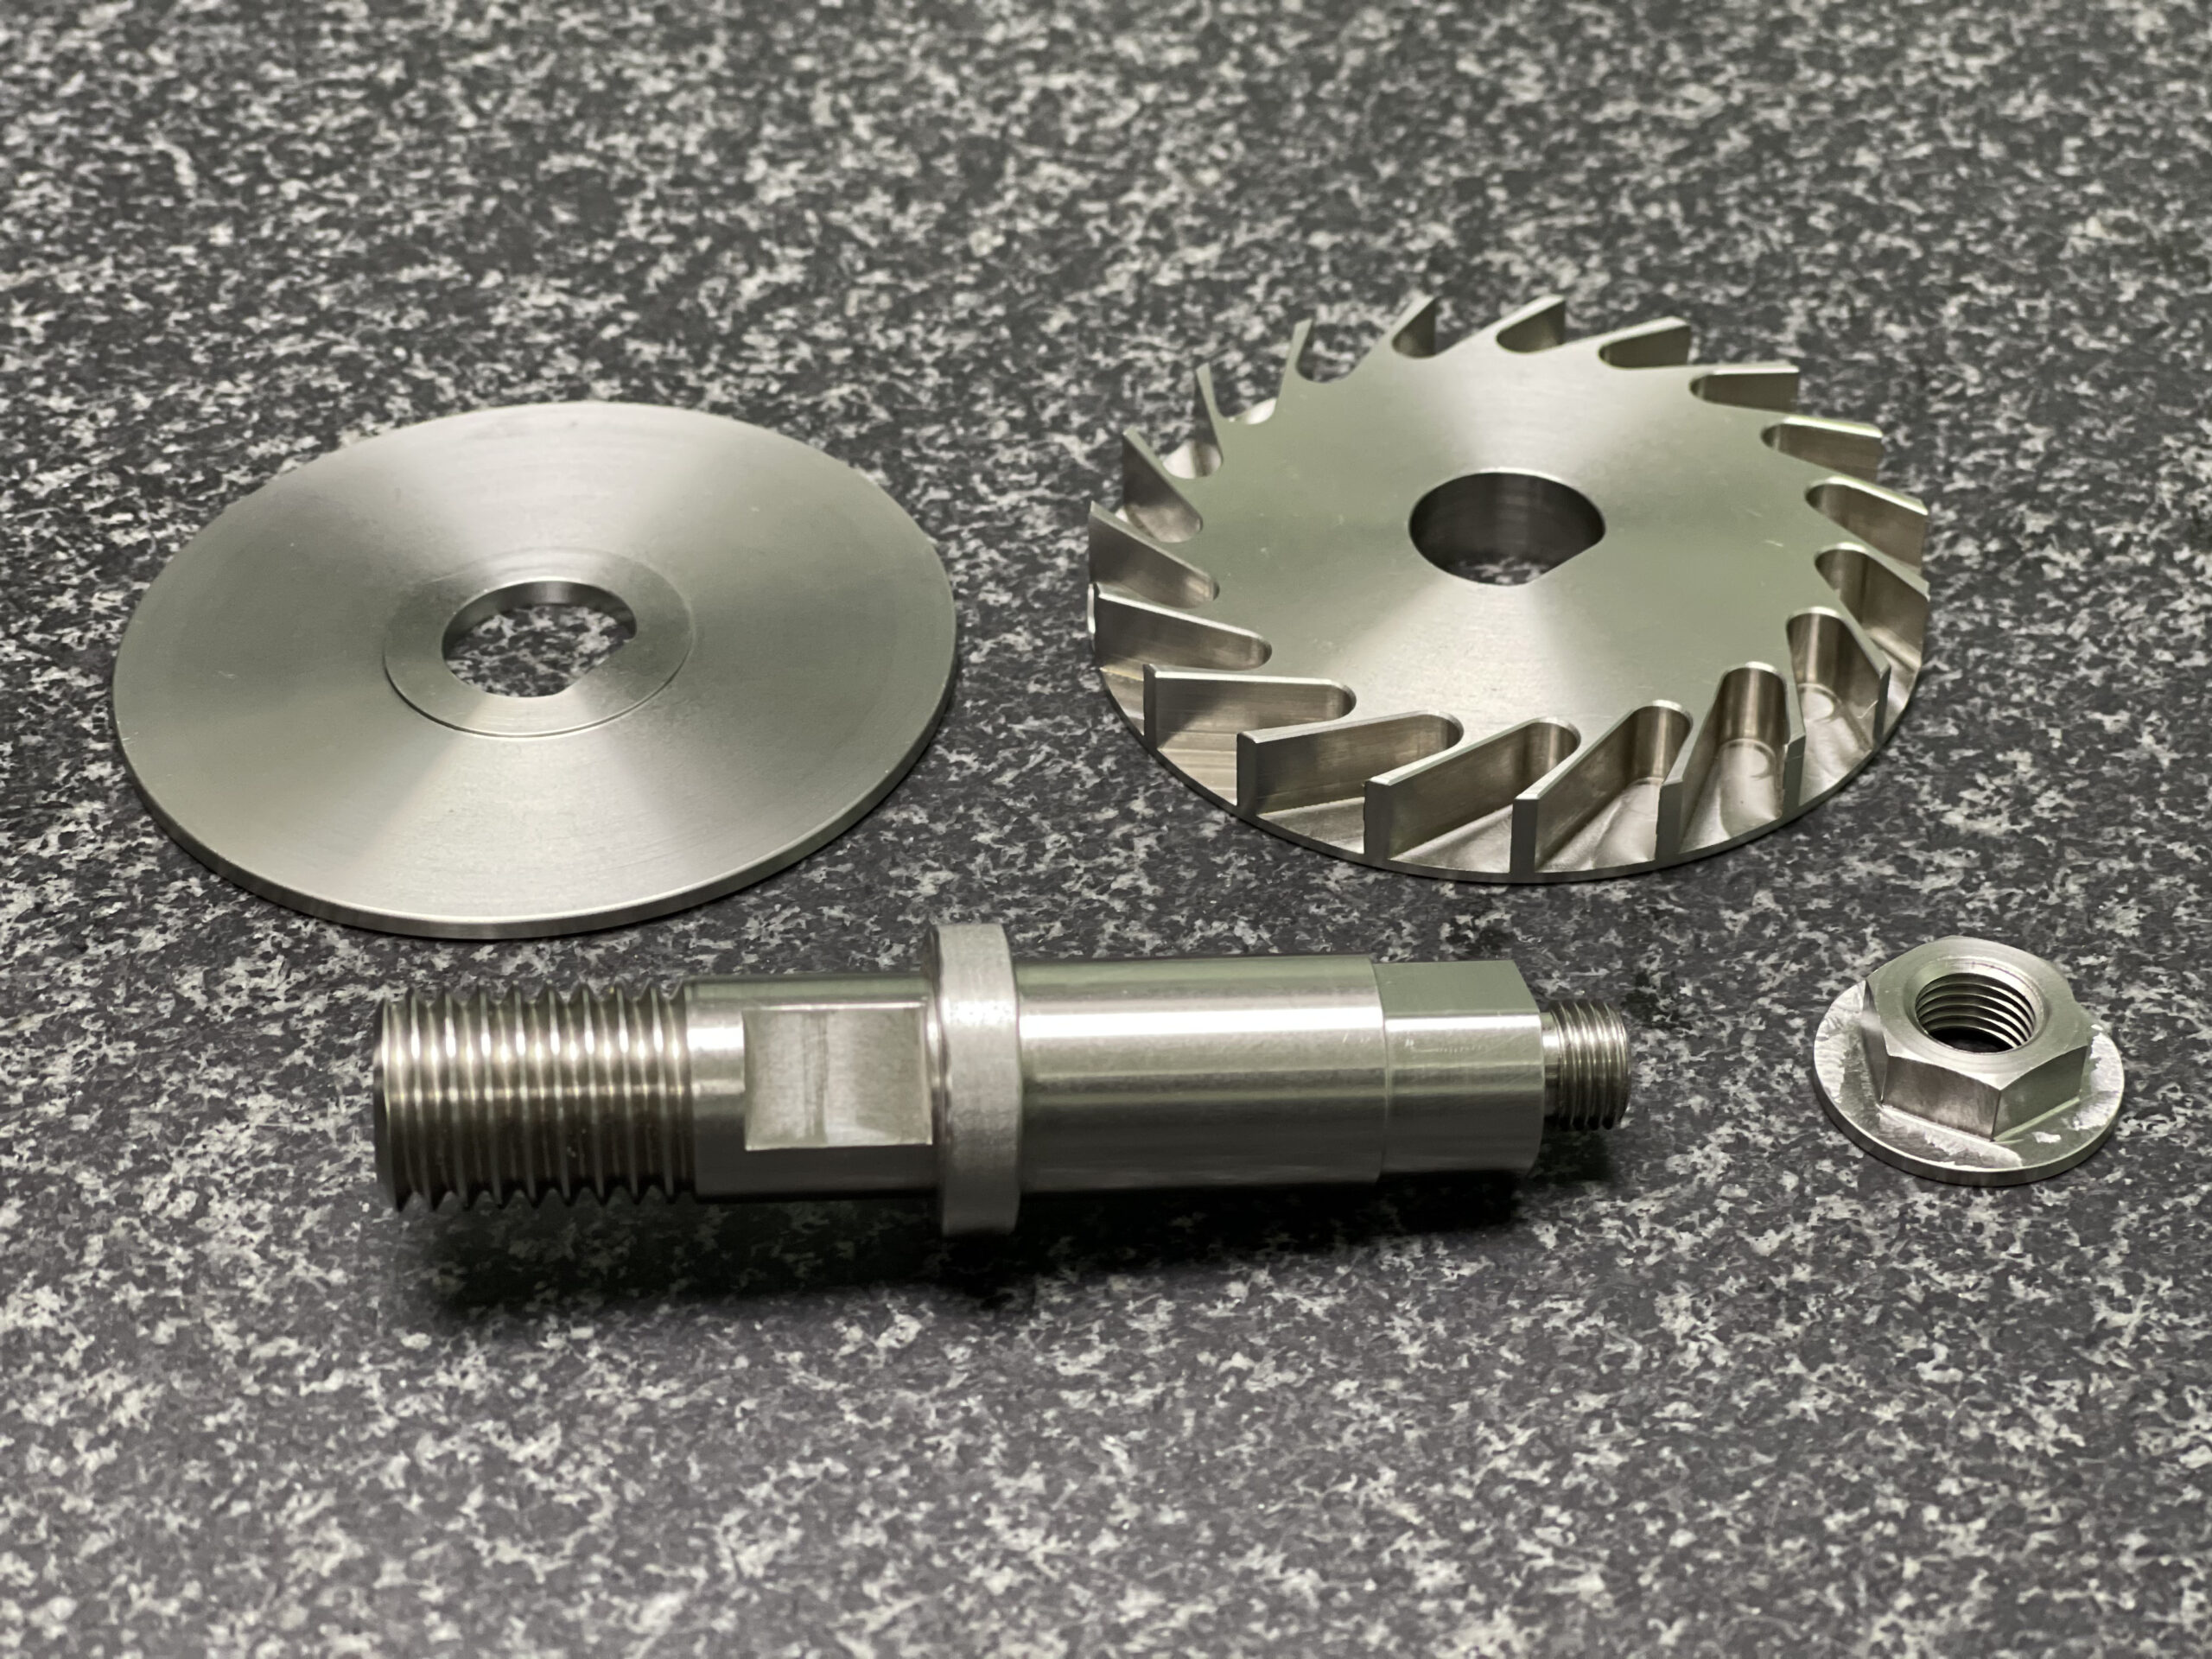 Stainless Shaft, Turbine and Washer